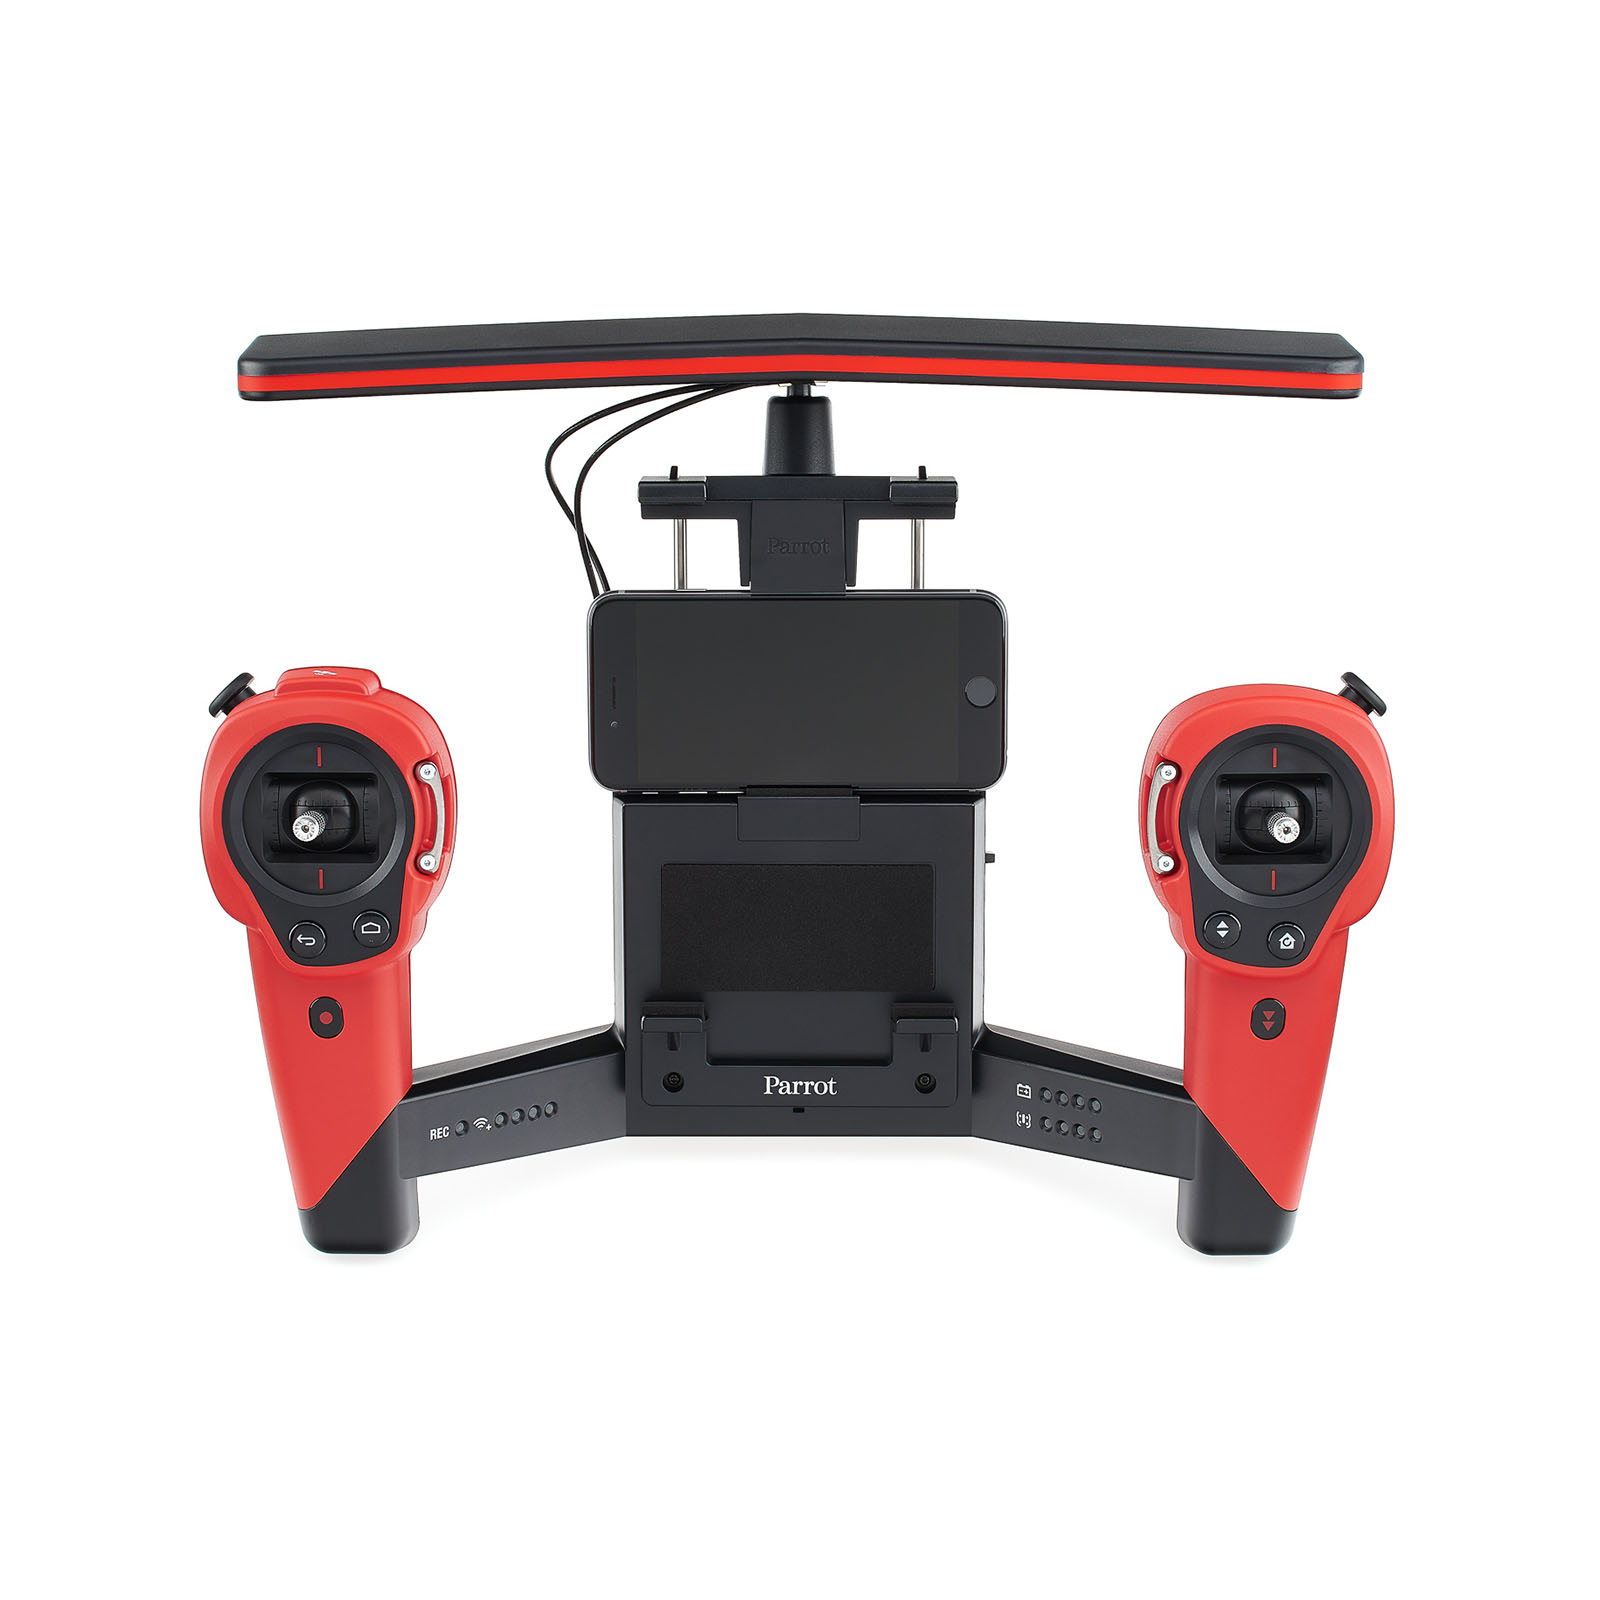 parrot drone rolling spider with 152537955366 on Programming Parrot Rolling Spider With Tynker likewise Drone Academy Is Now Available On Freeflight 3 together with Watch together with 152537955366 furthermore 10 Cosas Molonas Que Tu Puedes Hacer Con Una Impresora 3d.